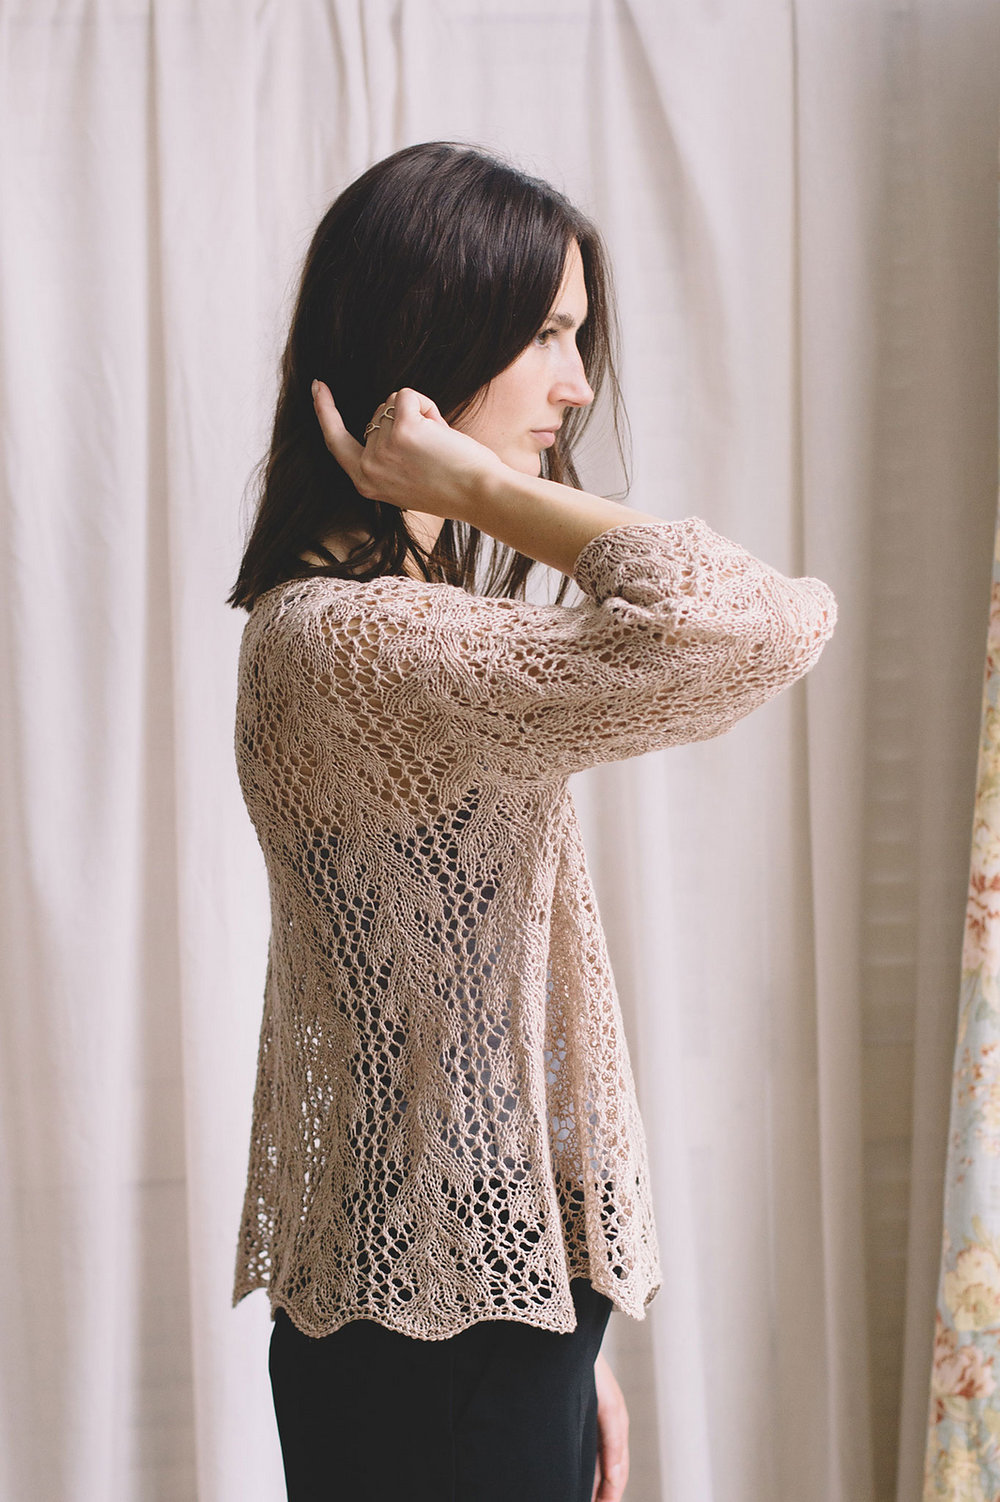 quince-and-co-donovan-michele-wang-knitting-pattern-sparrow-2.jpg